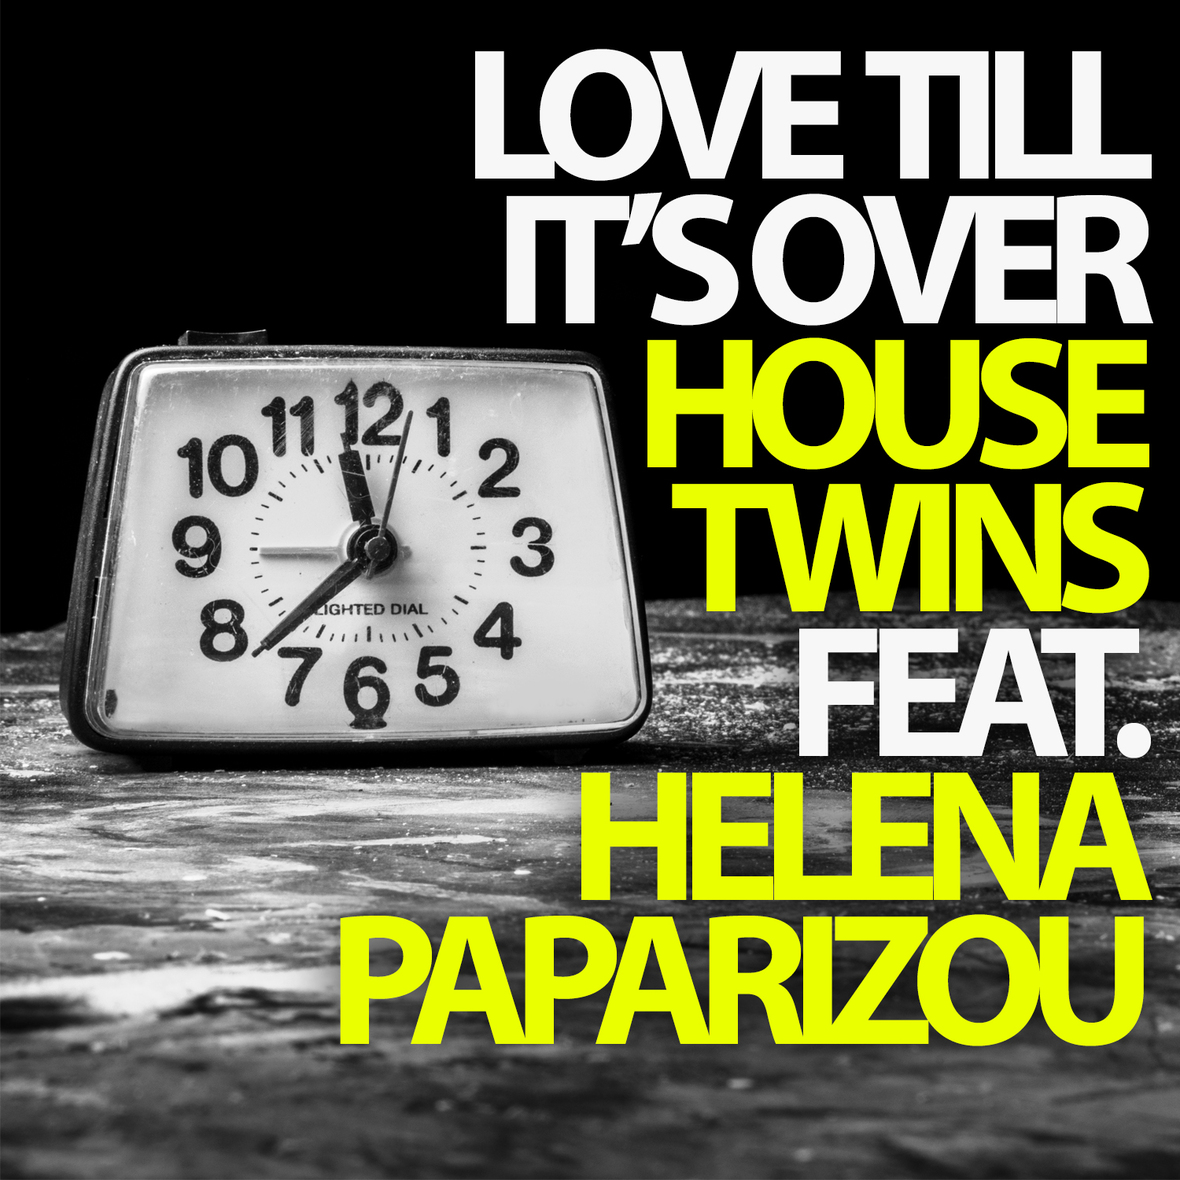 HouseTwins feat. Helena Paparizou - Love Till It's Over